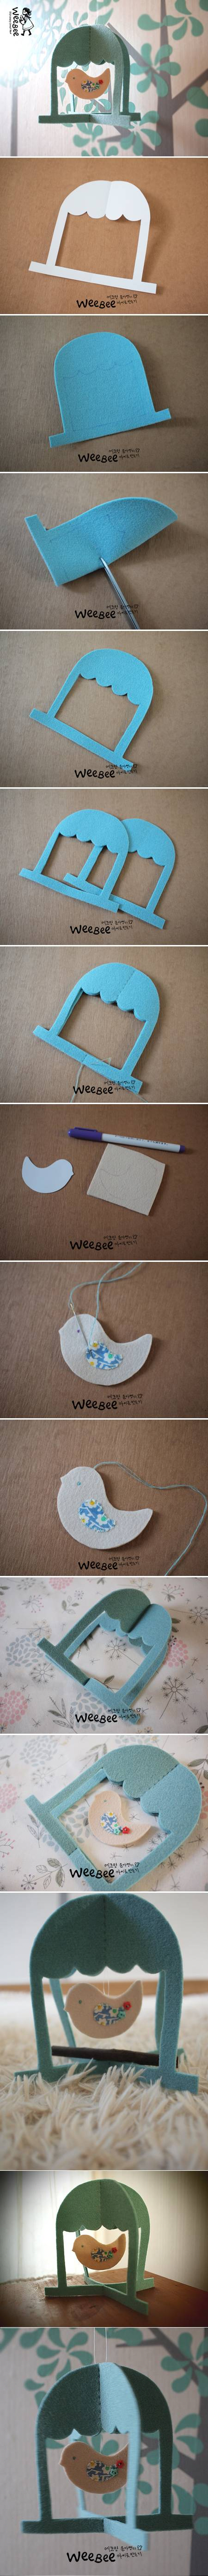 How to make Cute Felt Bird Mobile step by step DIY tutorial instructions